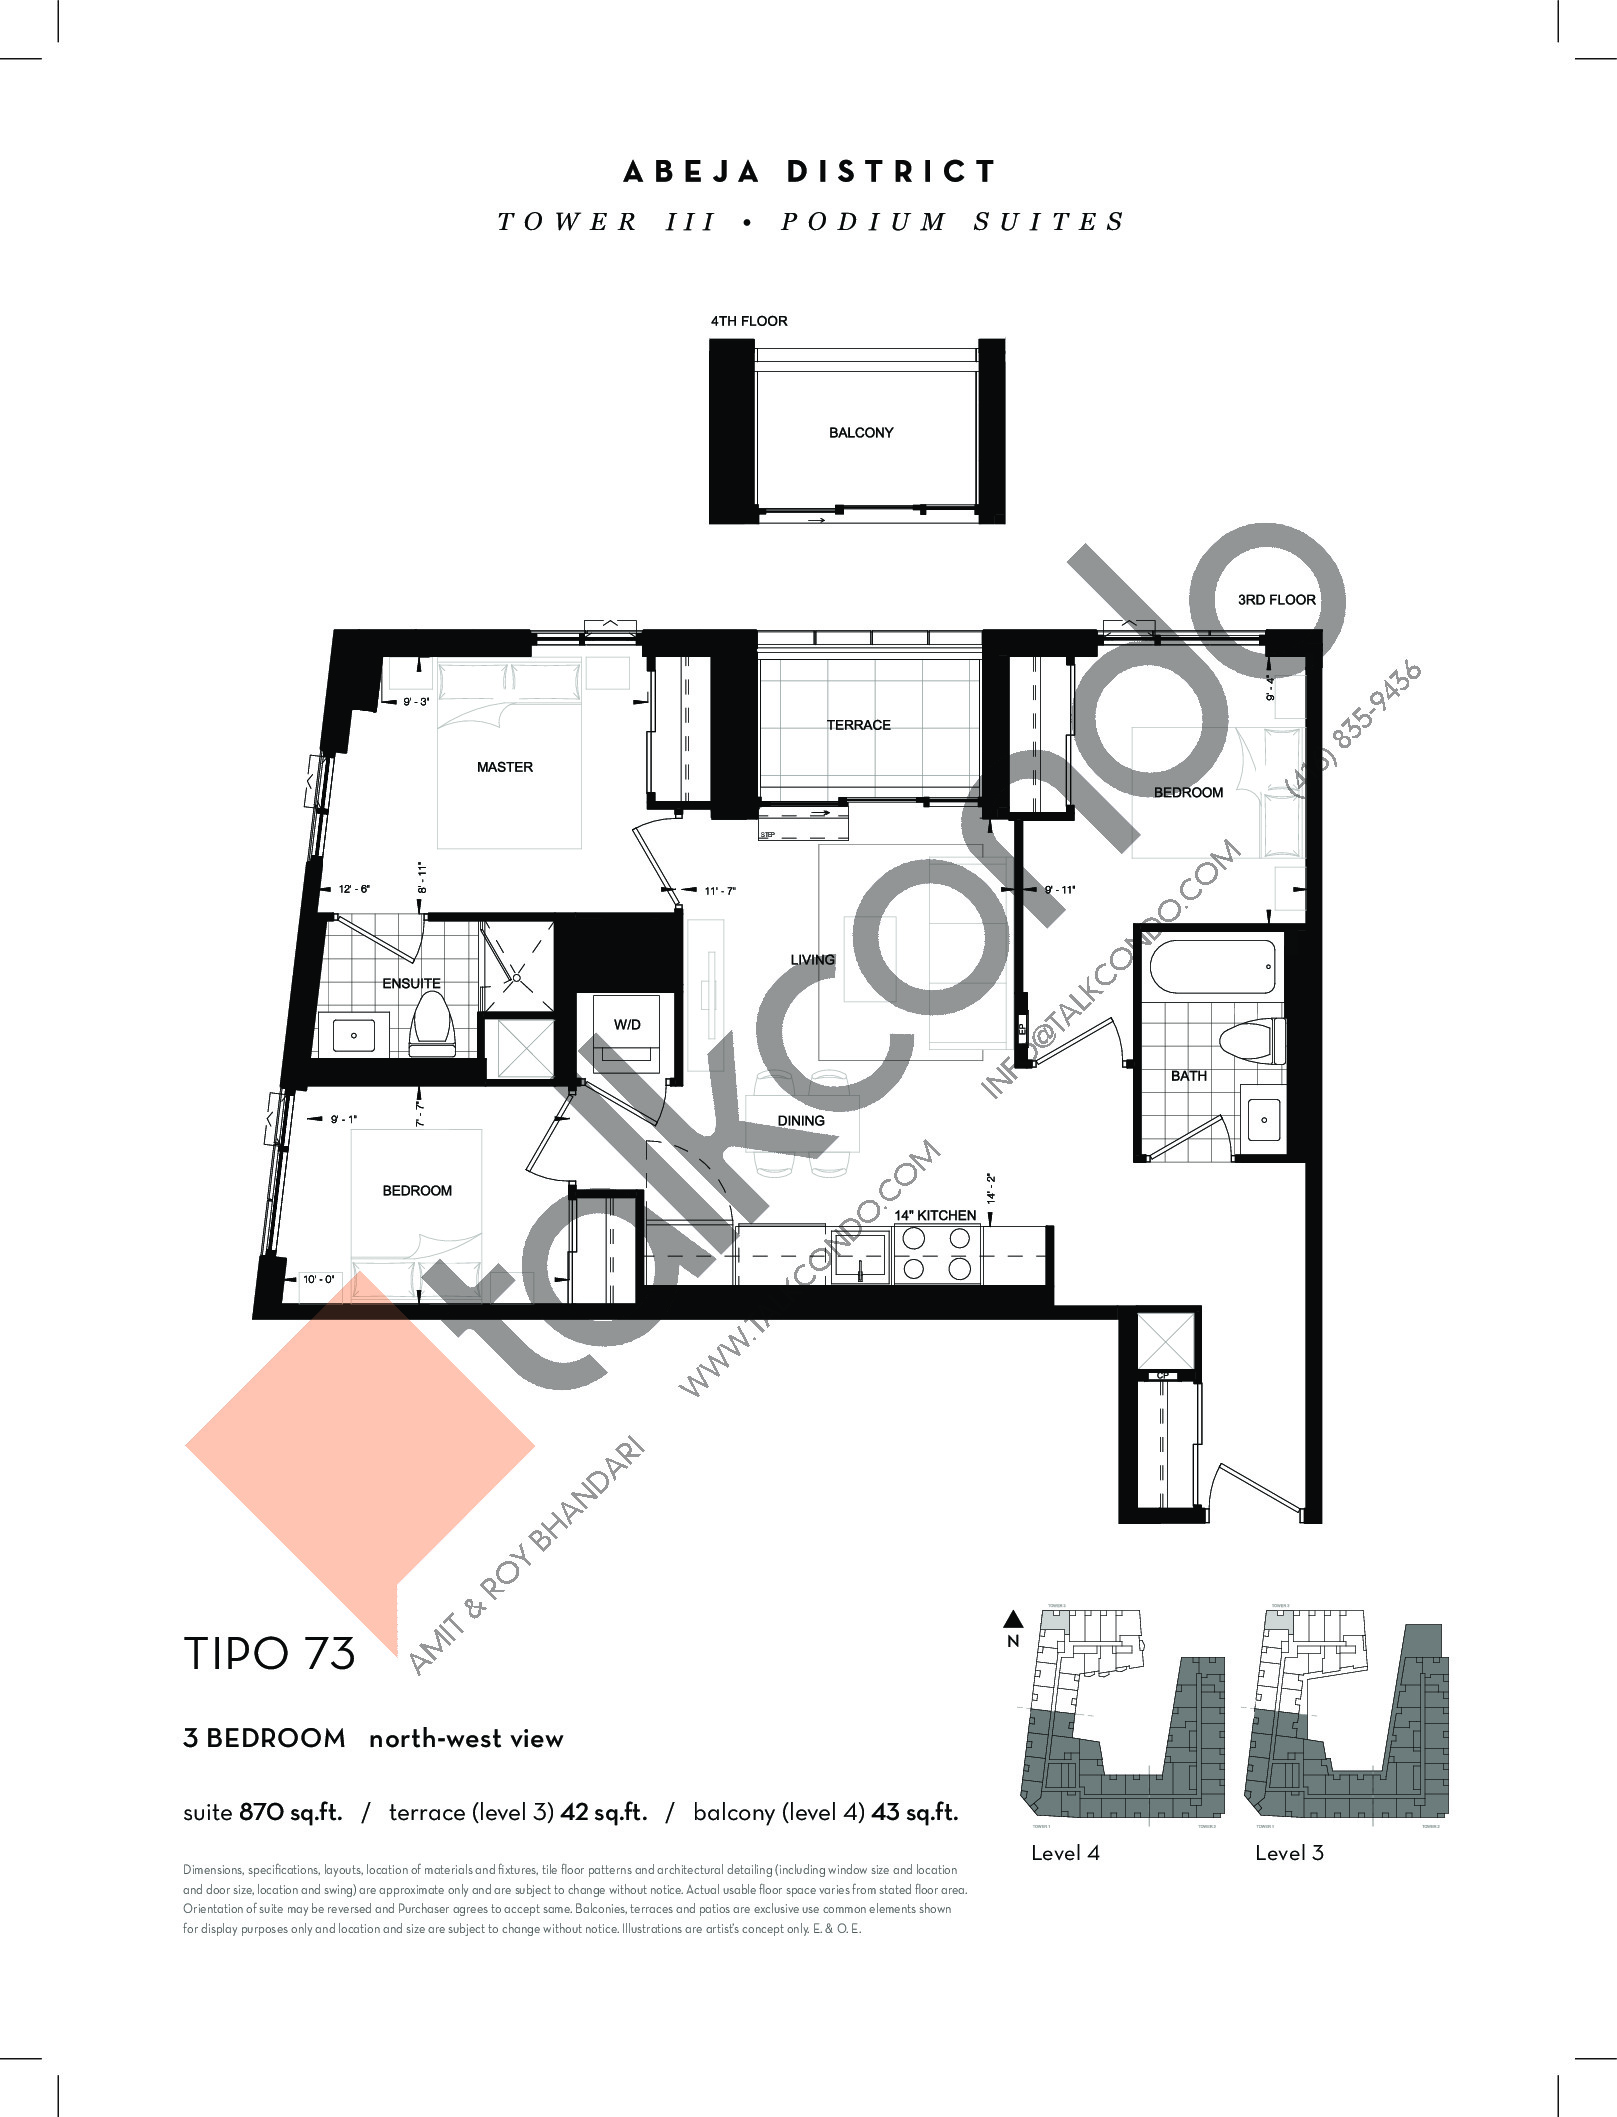 TIPO 73 Floor Plan at Abeja District Condos Tower 3 - 870 sq.ft